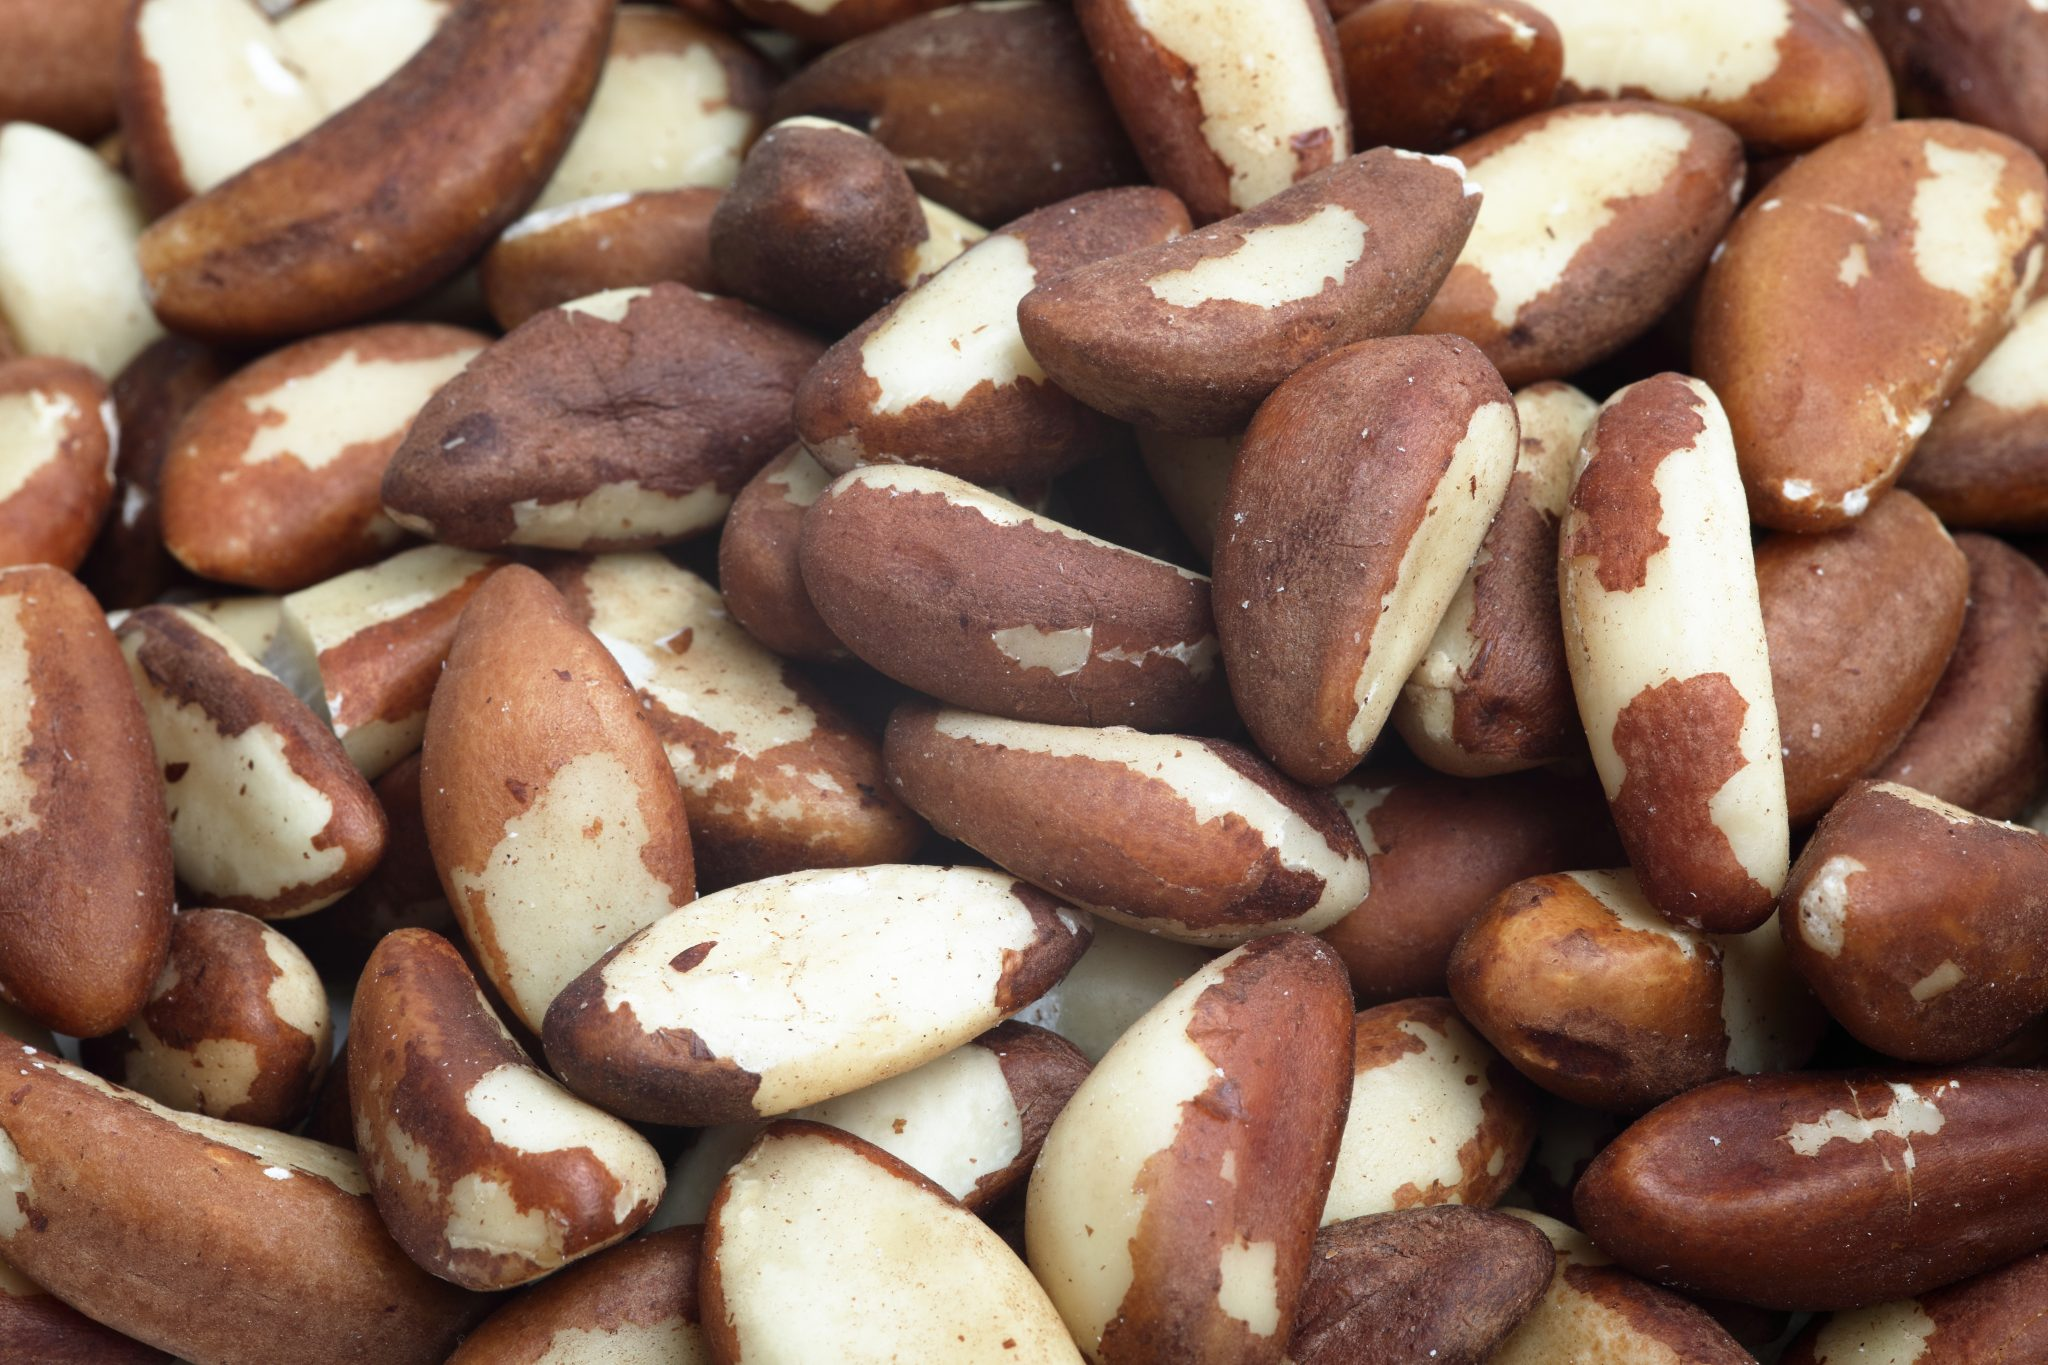 Chandras healthy vegan snack brazil nuts